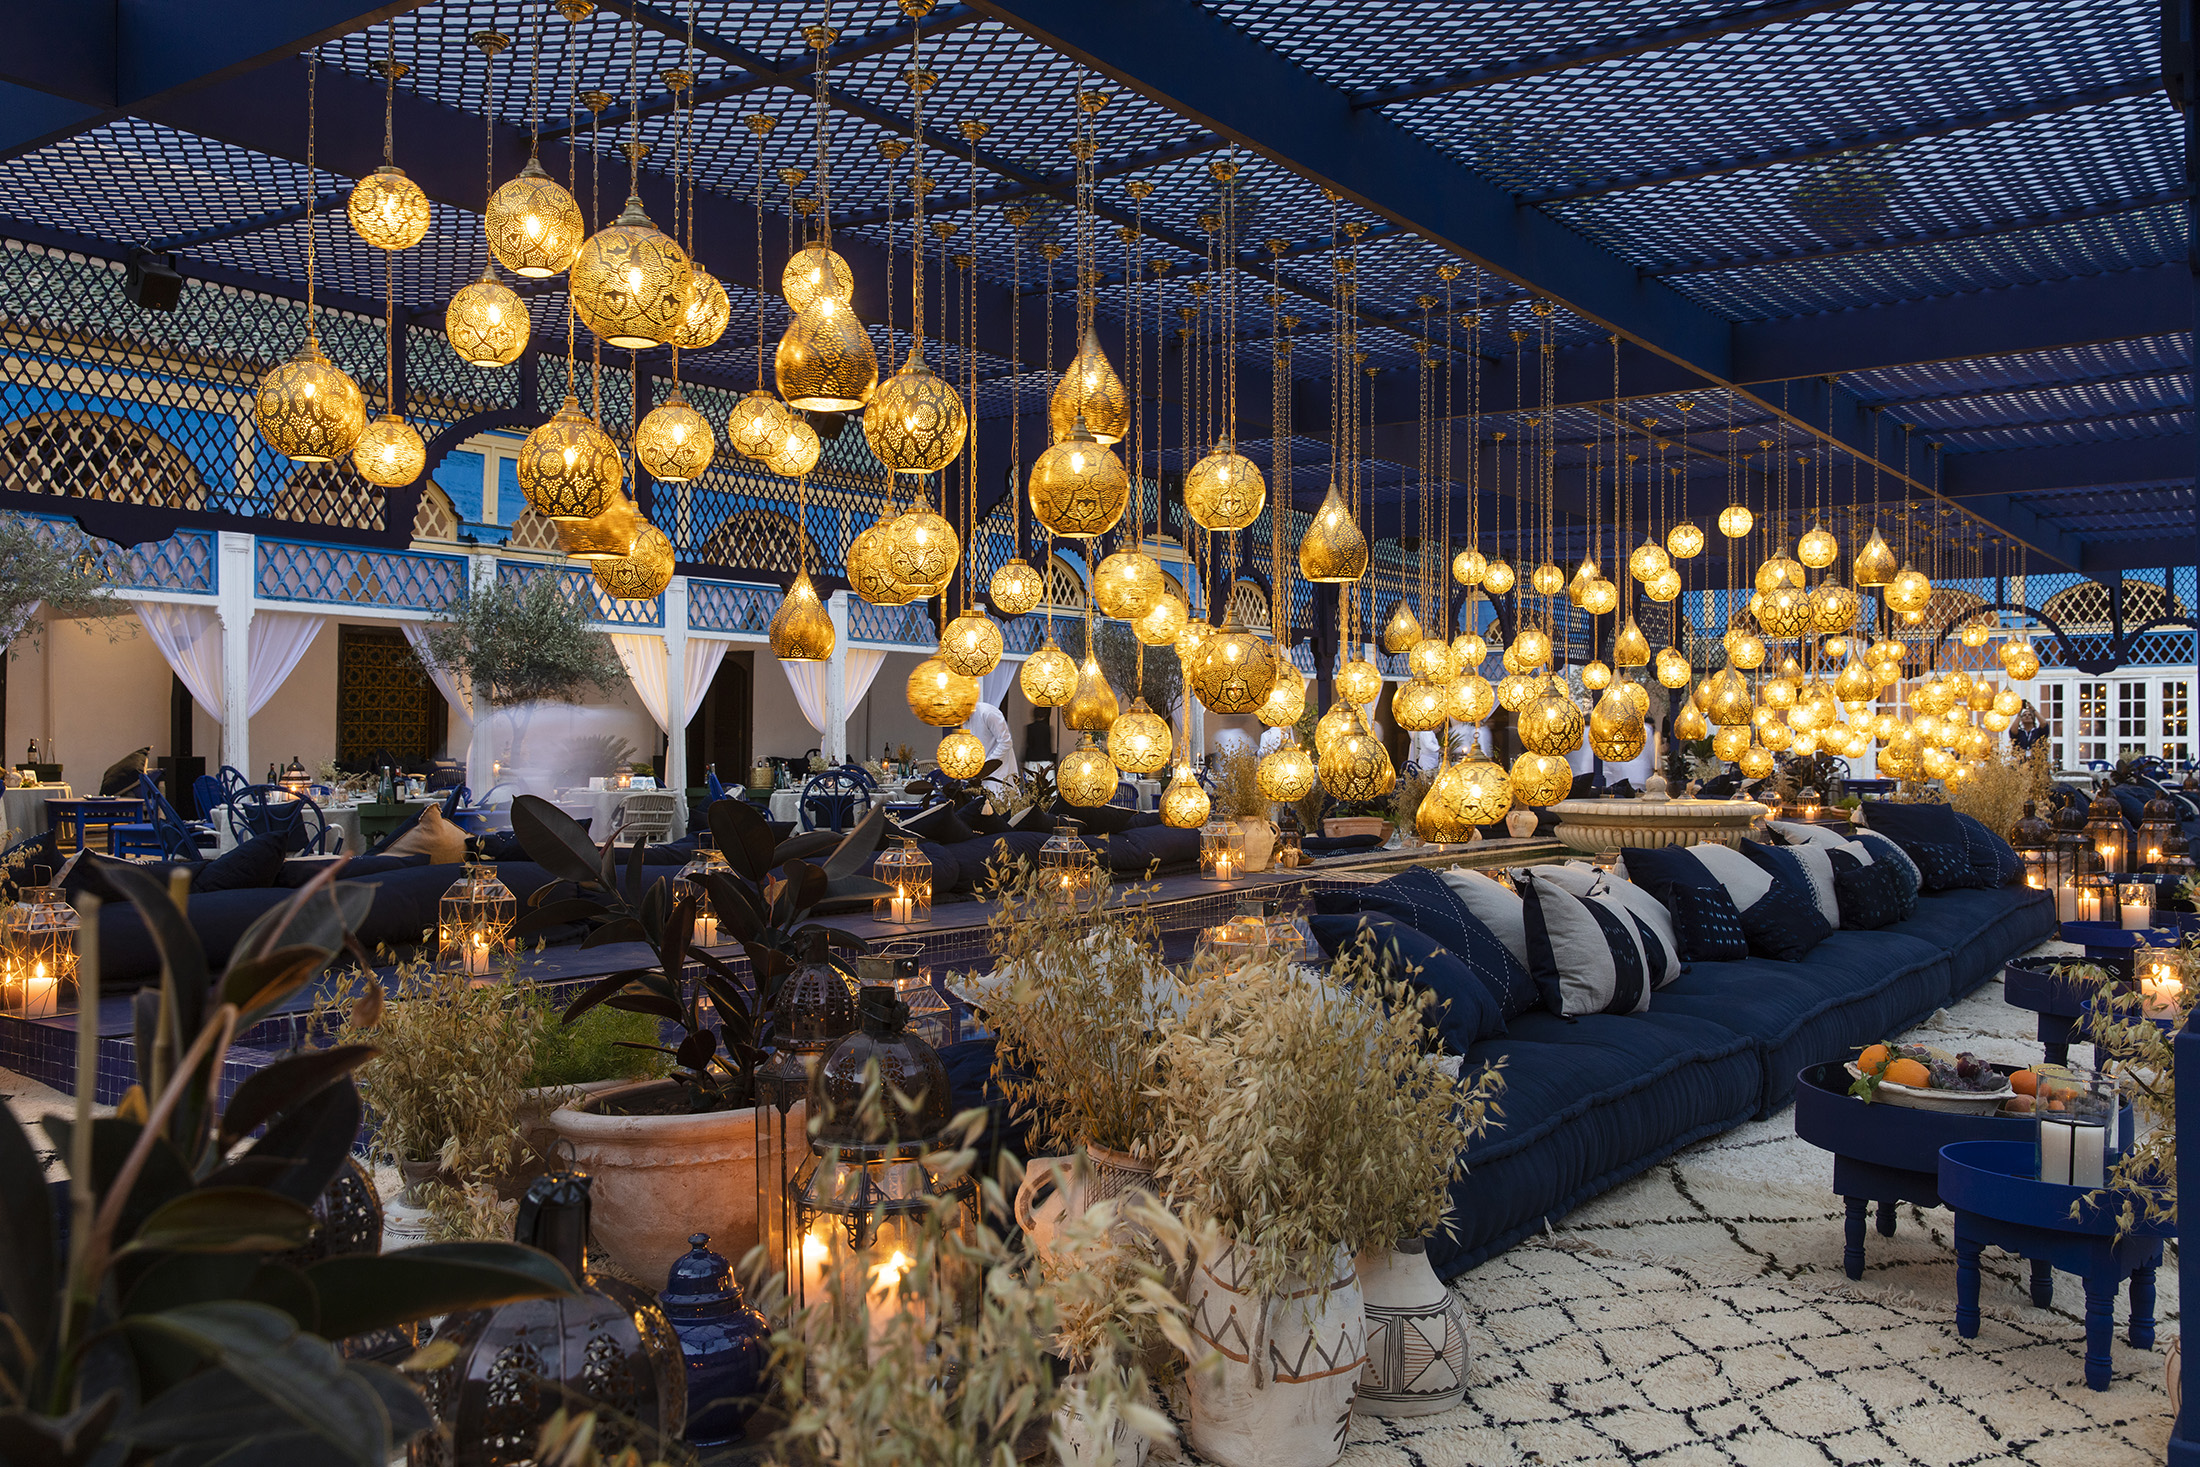 Dior Cruise 2020 Fashion Show Welcome Dinner